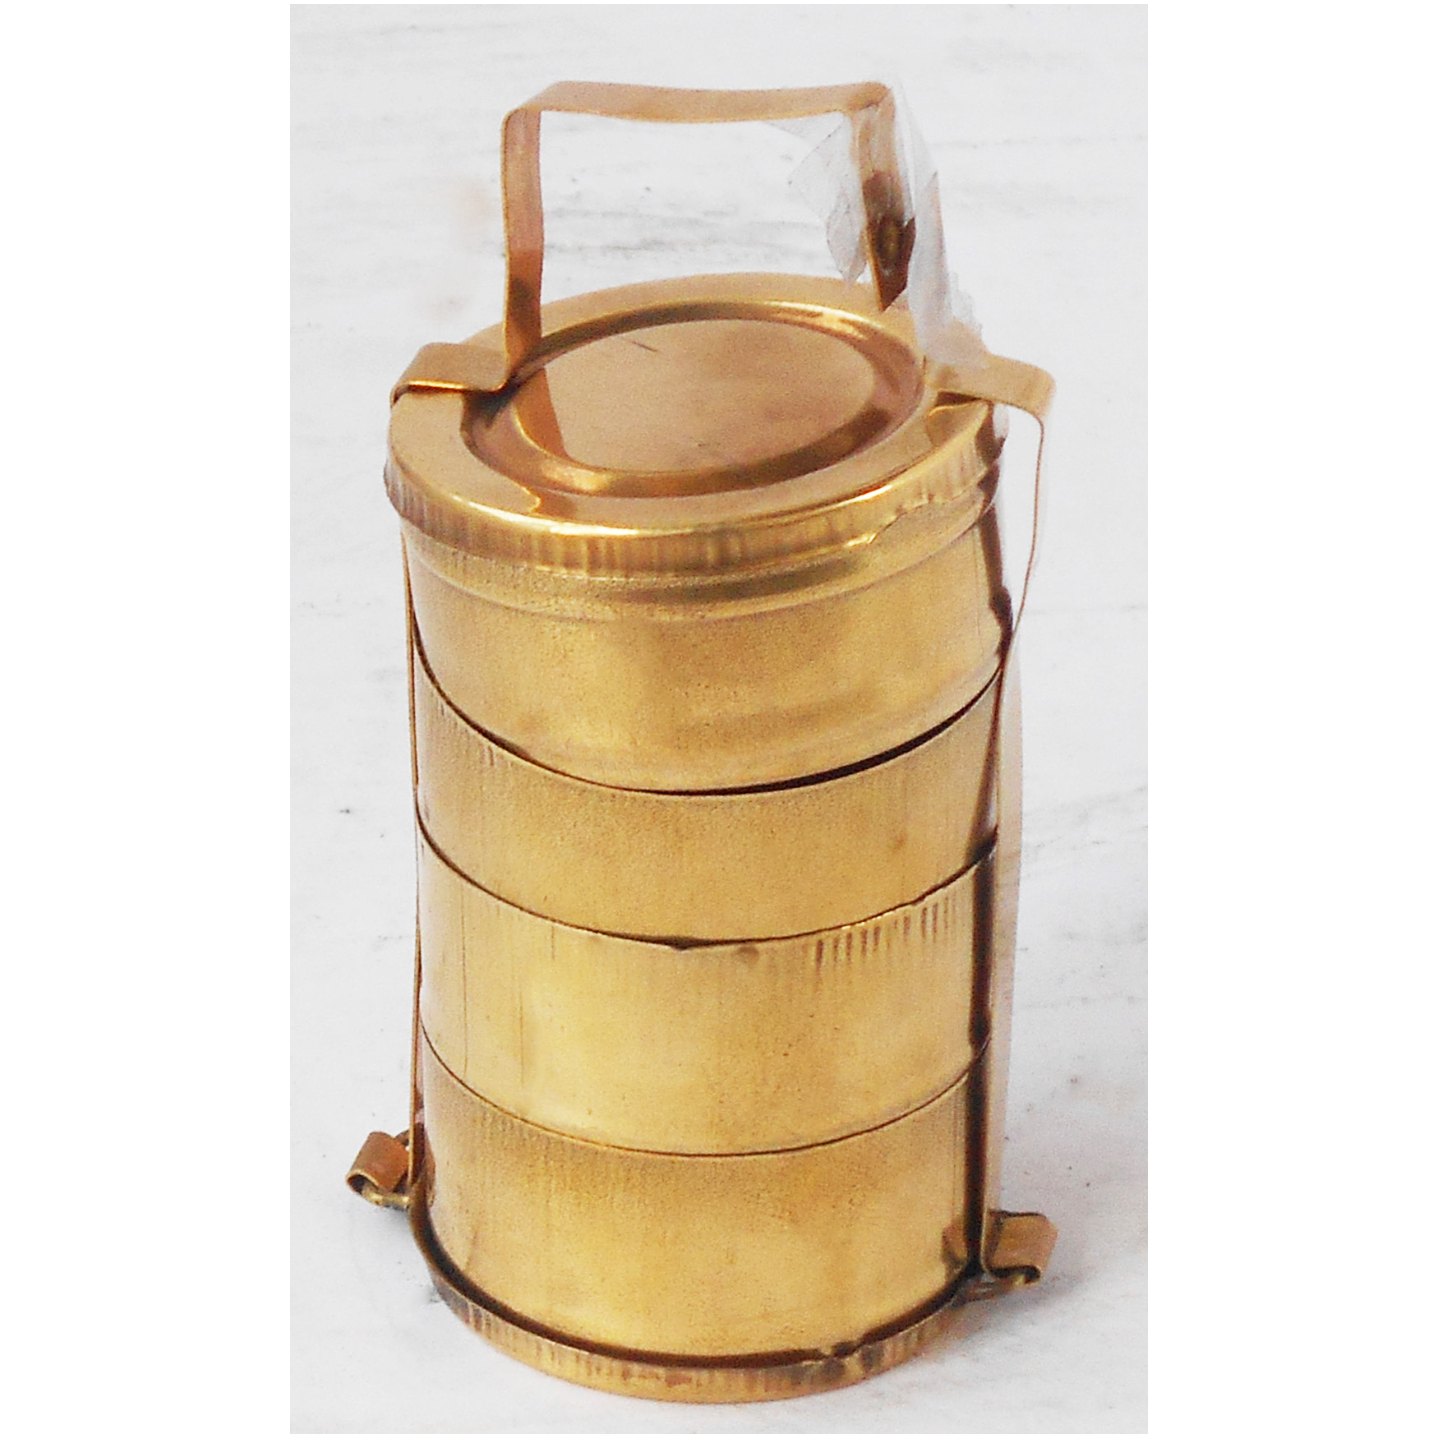 Brass Lunch Box Small Miniature Toy For Children Playing -1.61.63.5 Inch Z370 E